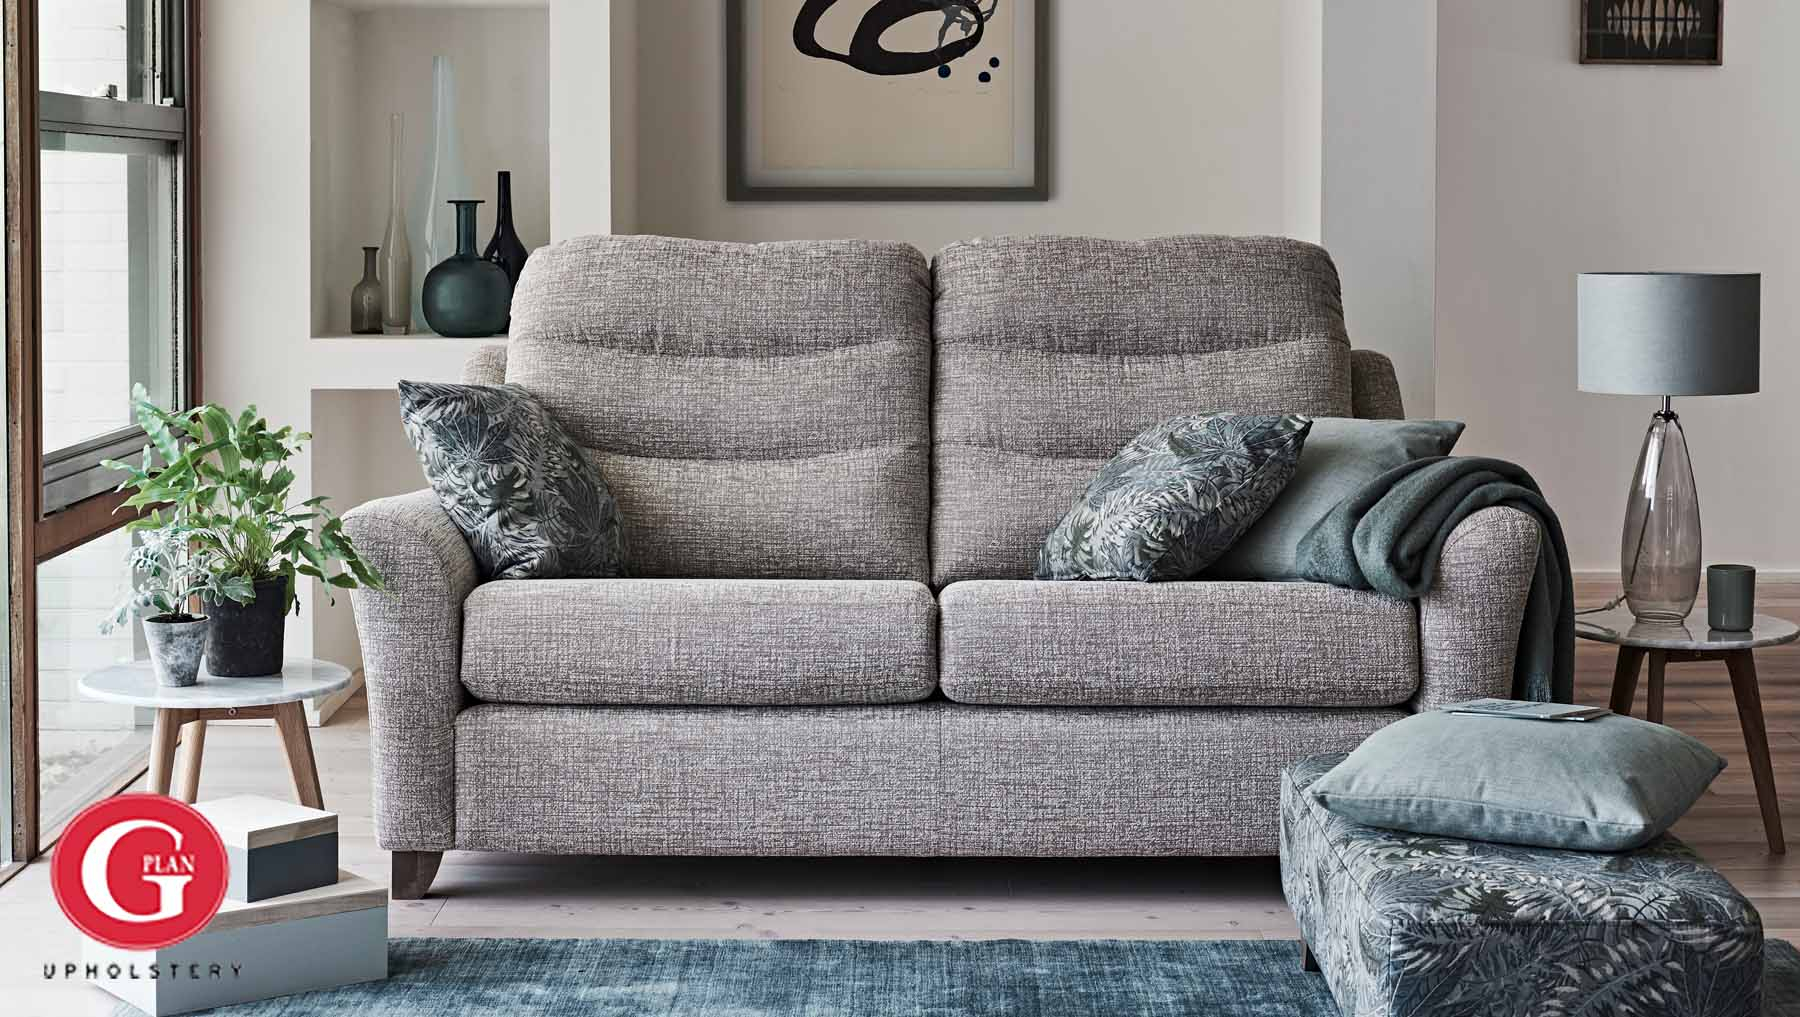 G Plan Tate – Fabric Ranges – Sofas & Chairs | Tr Hayes – Furniture With Tate Arm Sofa Chairs (Image 5 of 25)